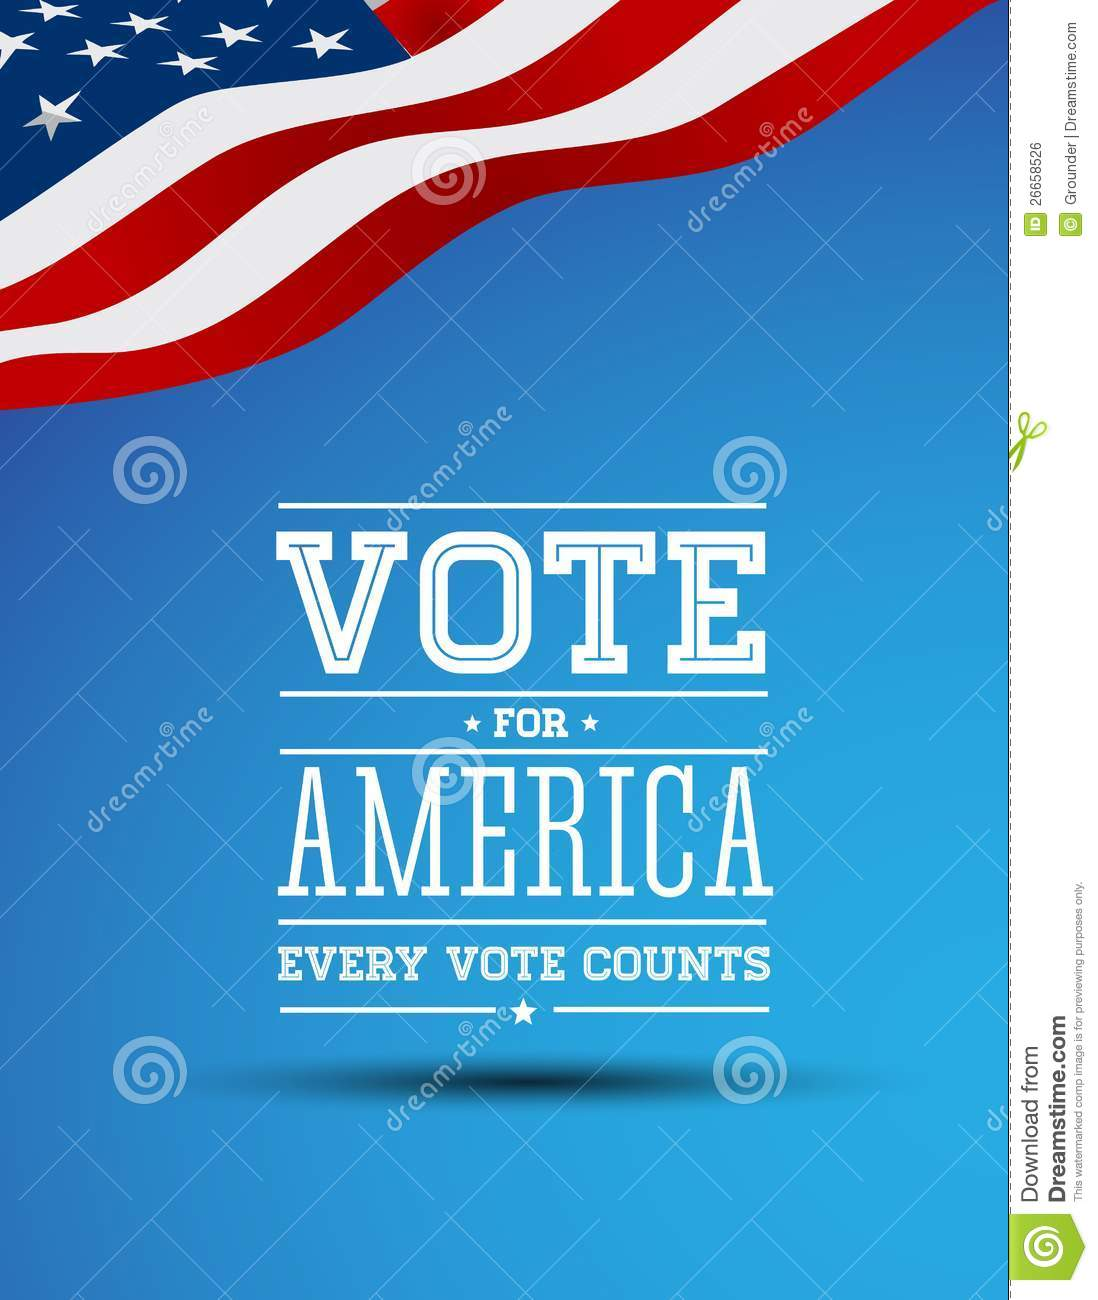 Vote For America Vintage Poster Royalty Free Stock Image   Image